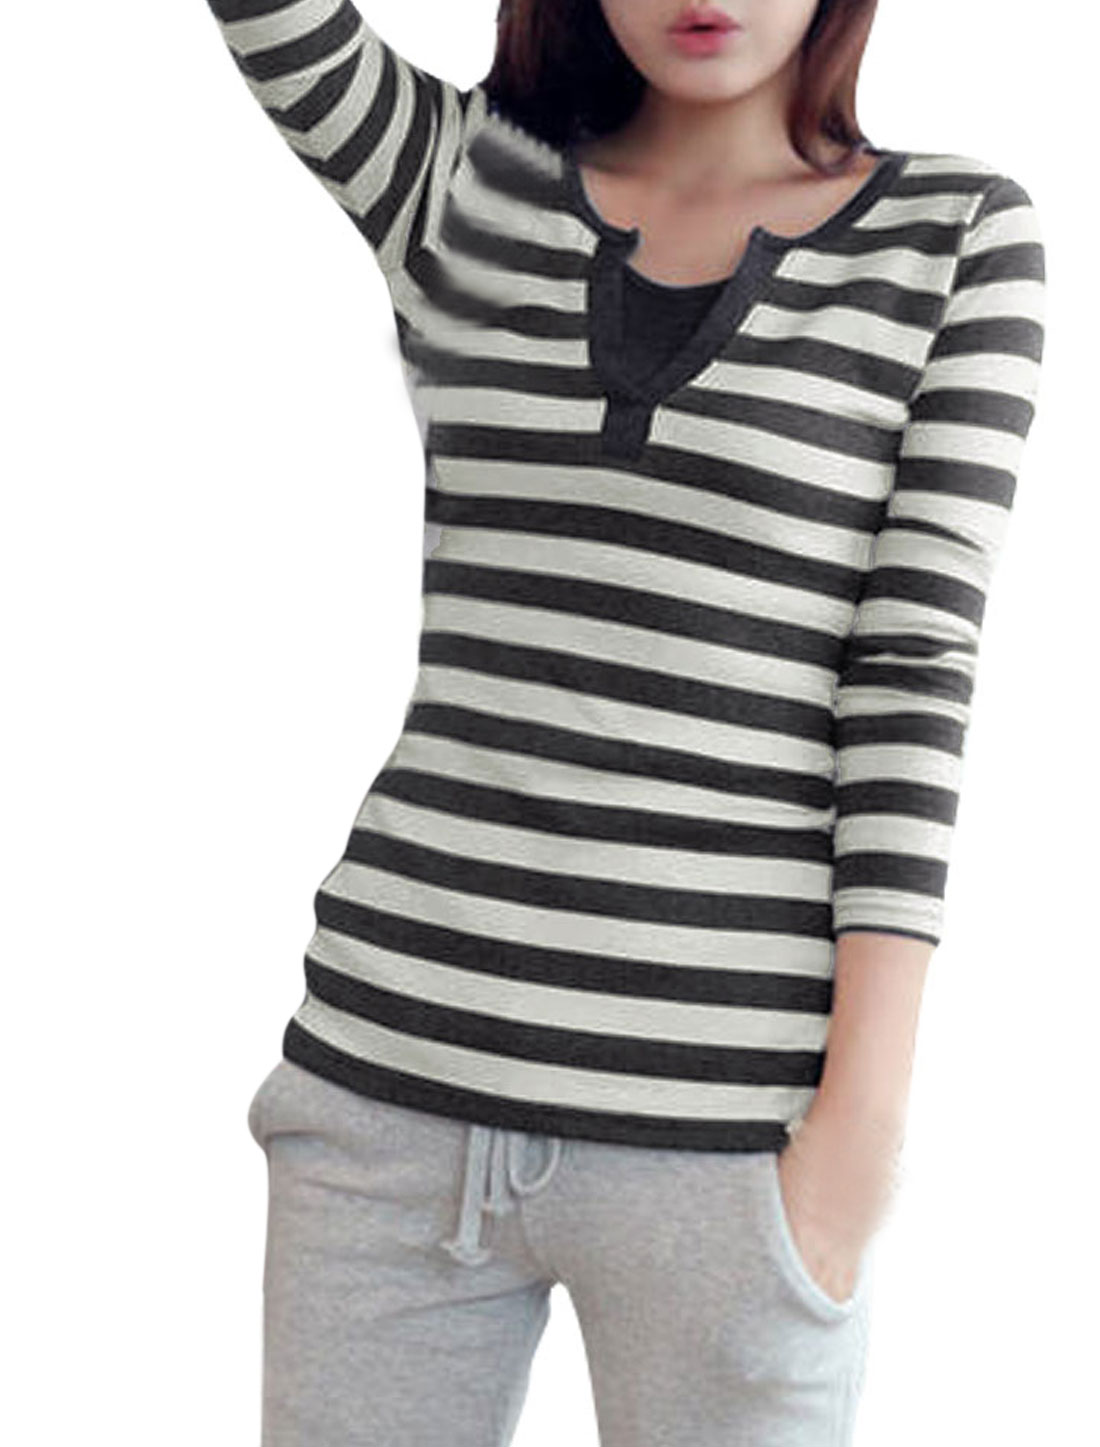 Ladies Dark Gray Light Gray Split Neck Horizontal Stripes Tee Shirt XS